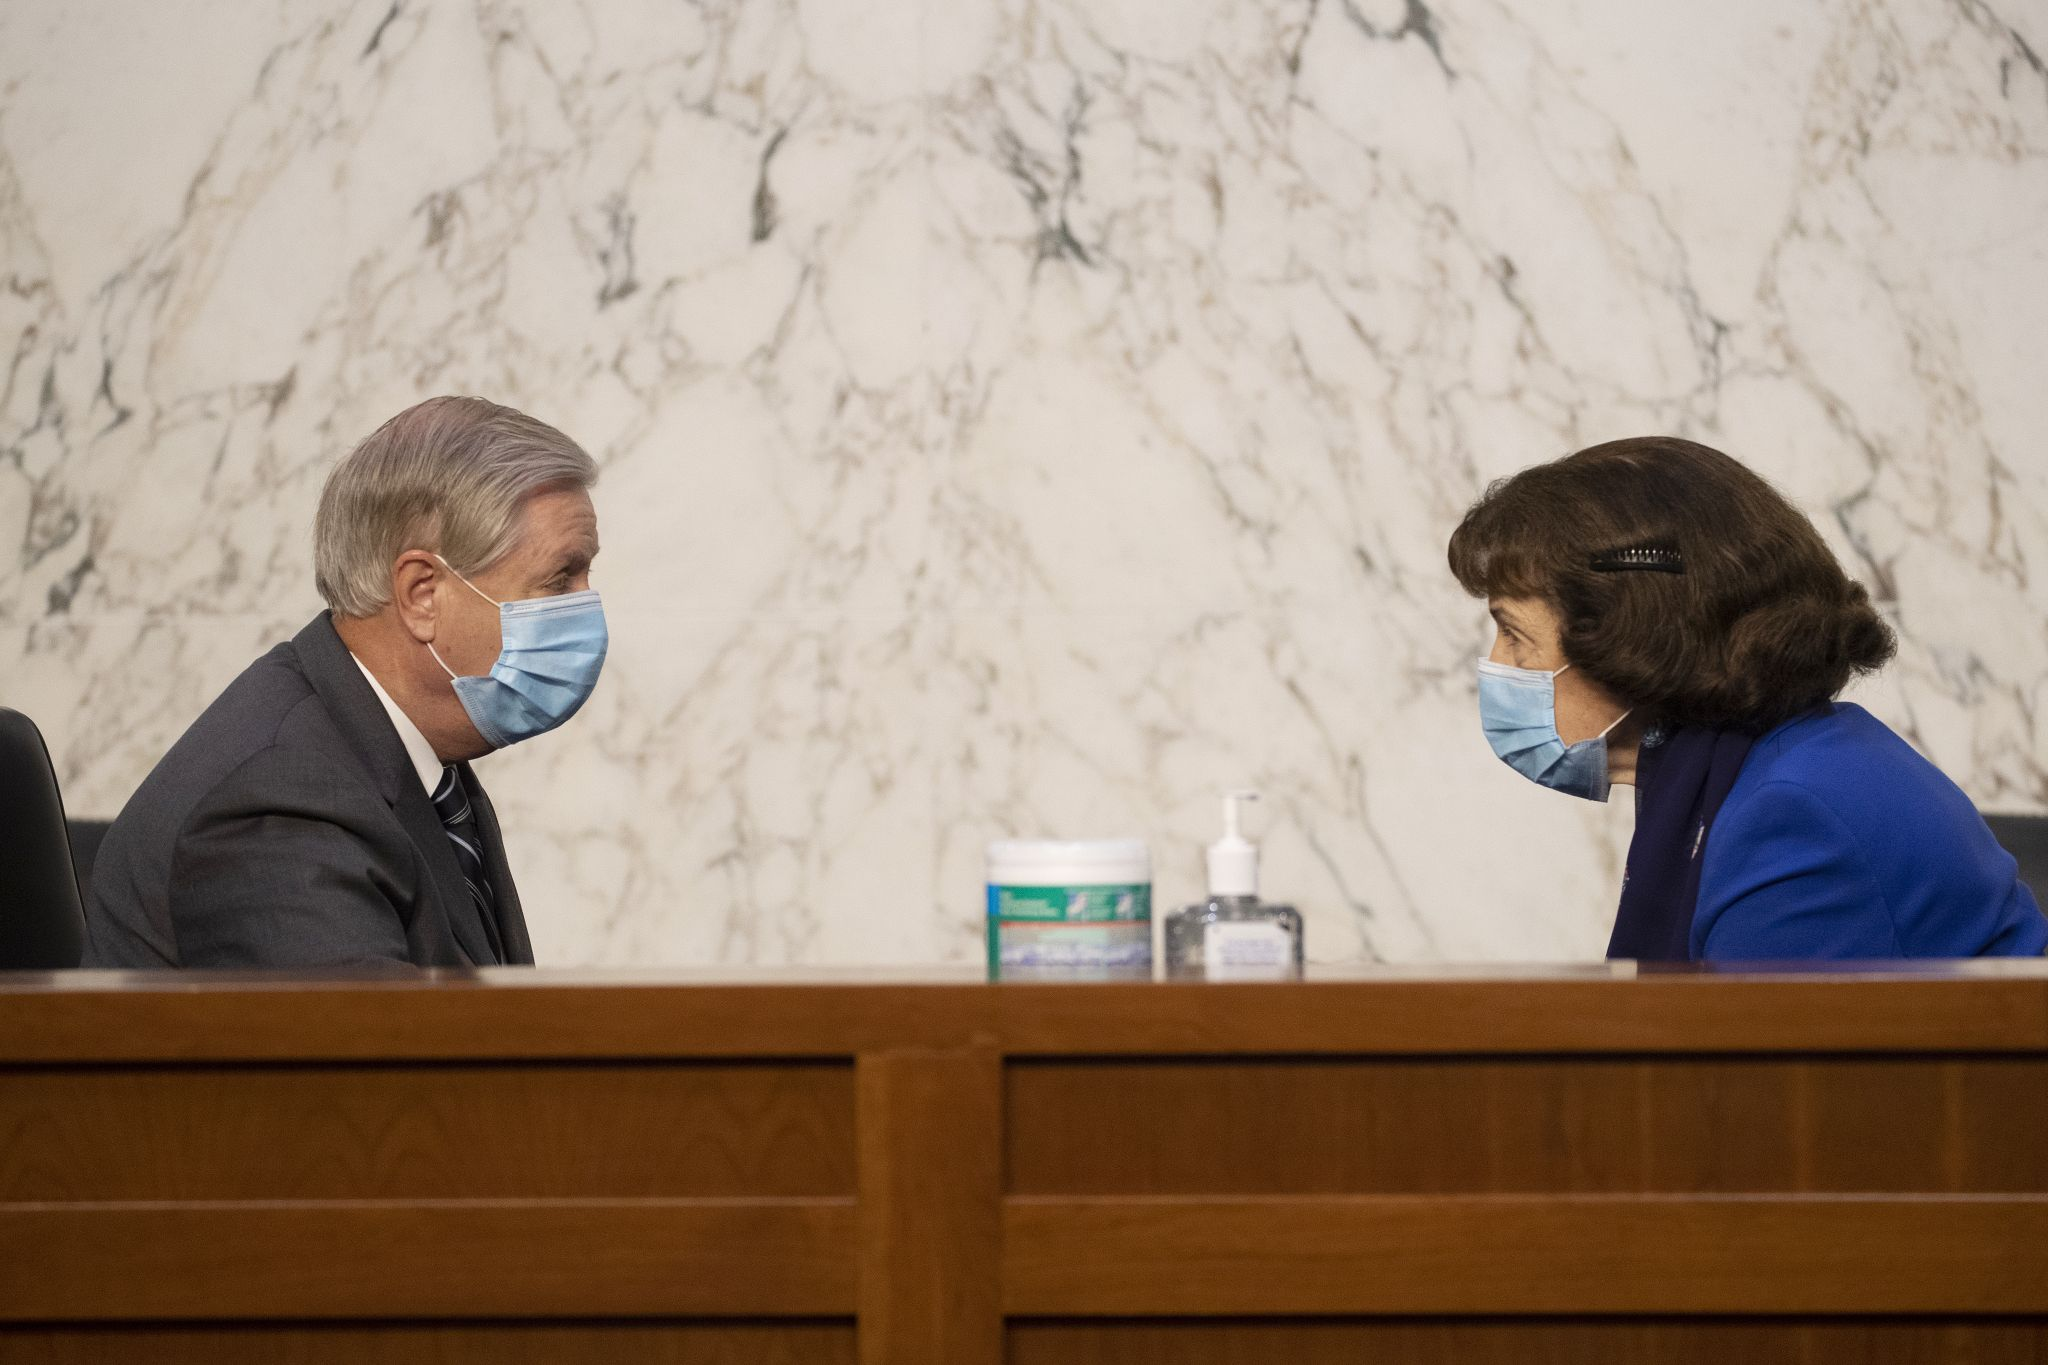 People are startled by Dianne Feinstein's proximity to Lindsey Graham during Barrett hearings